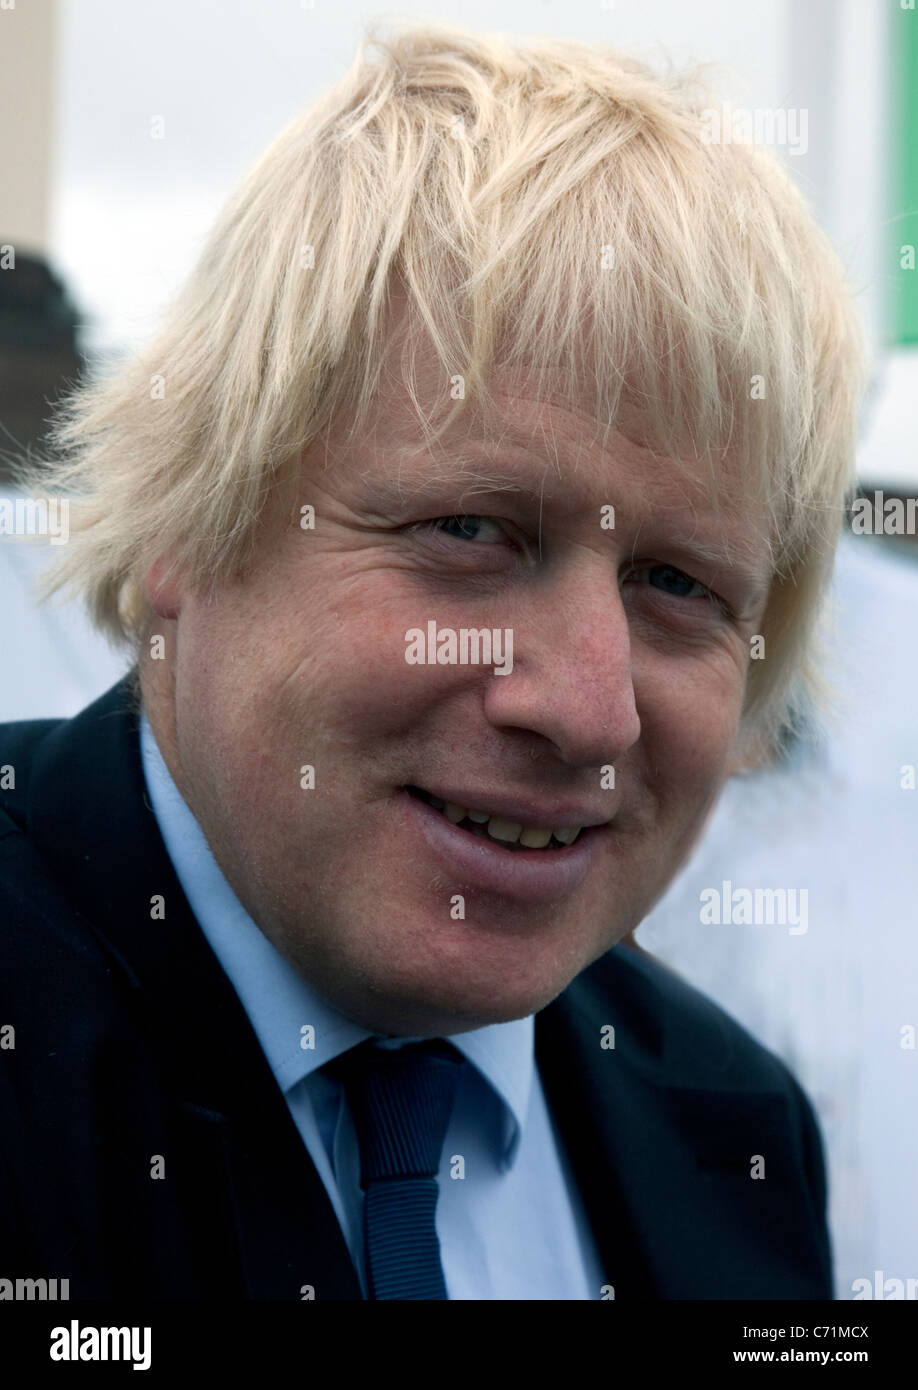 Mayor of London Boris Johnson at event in London - Stock Image